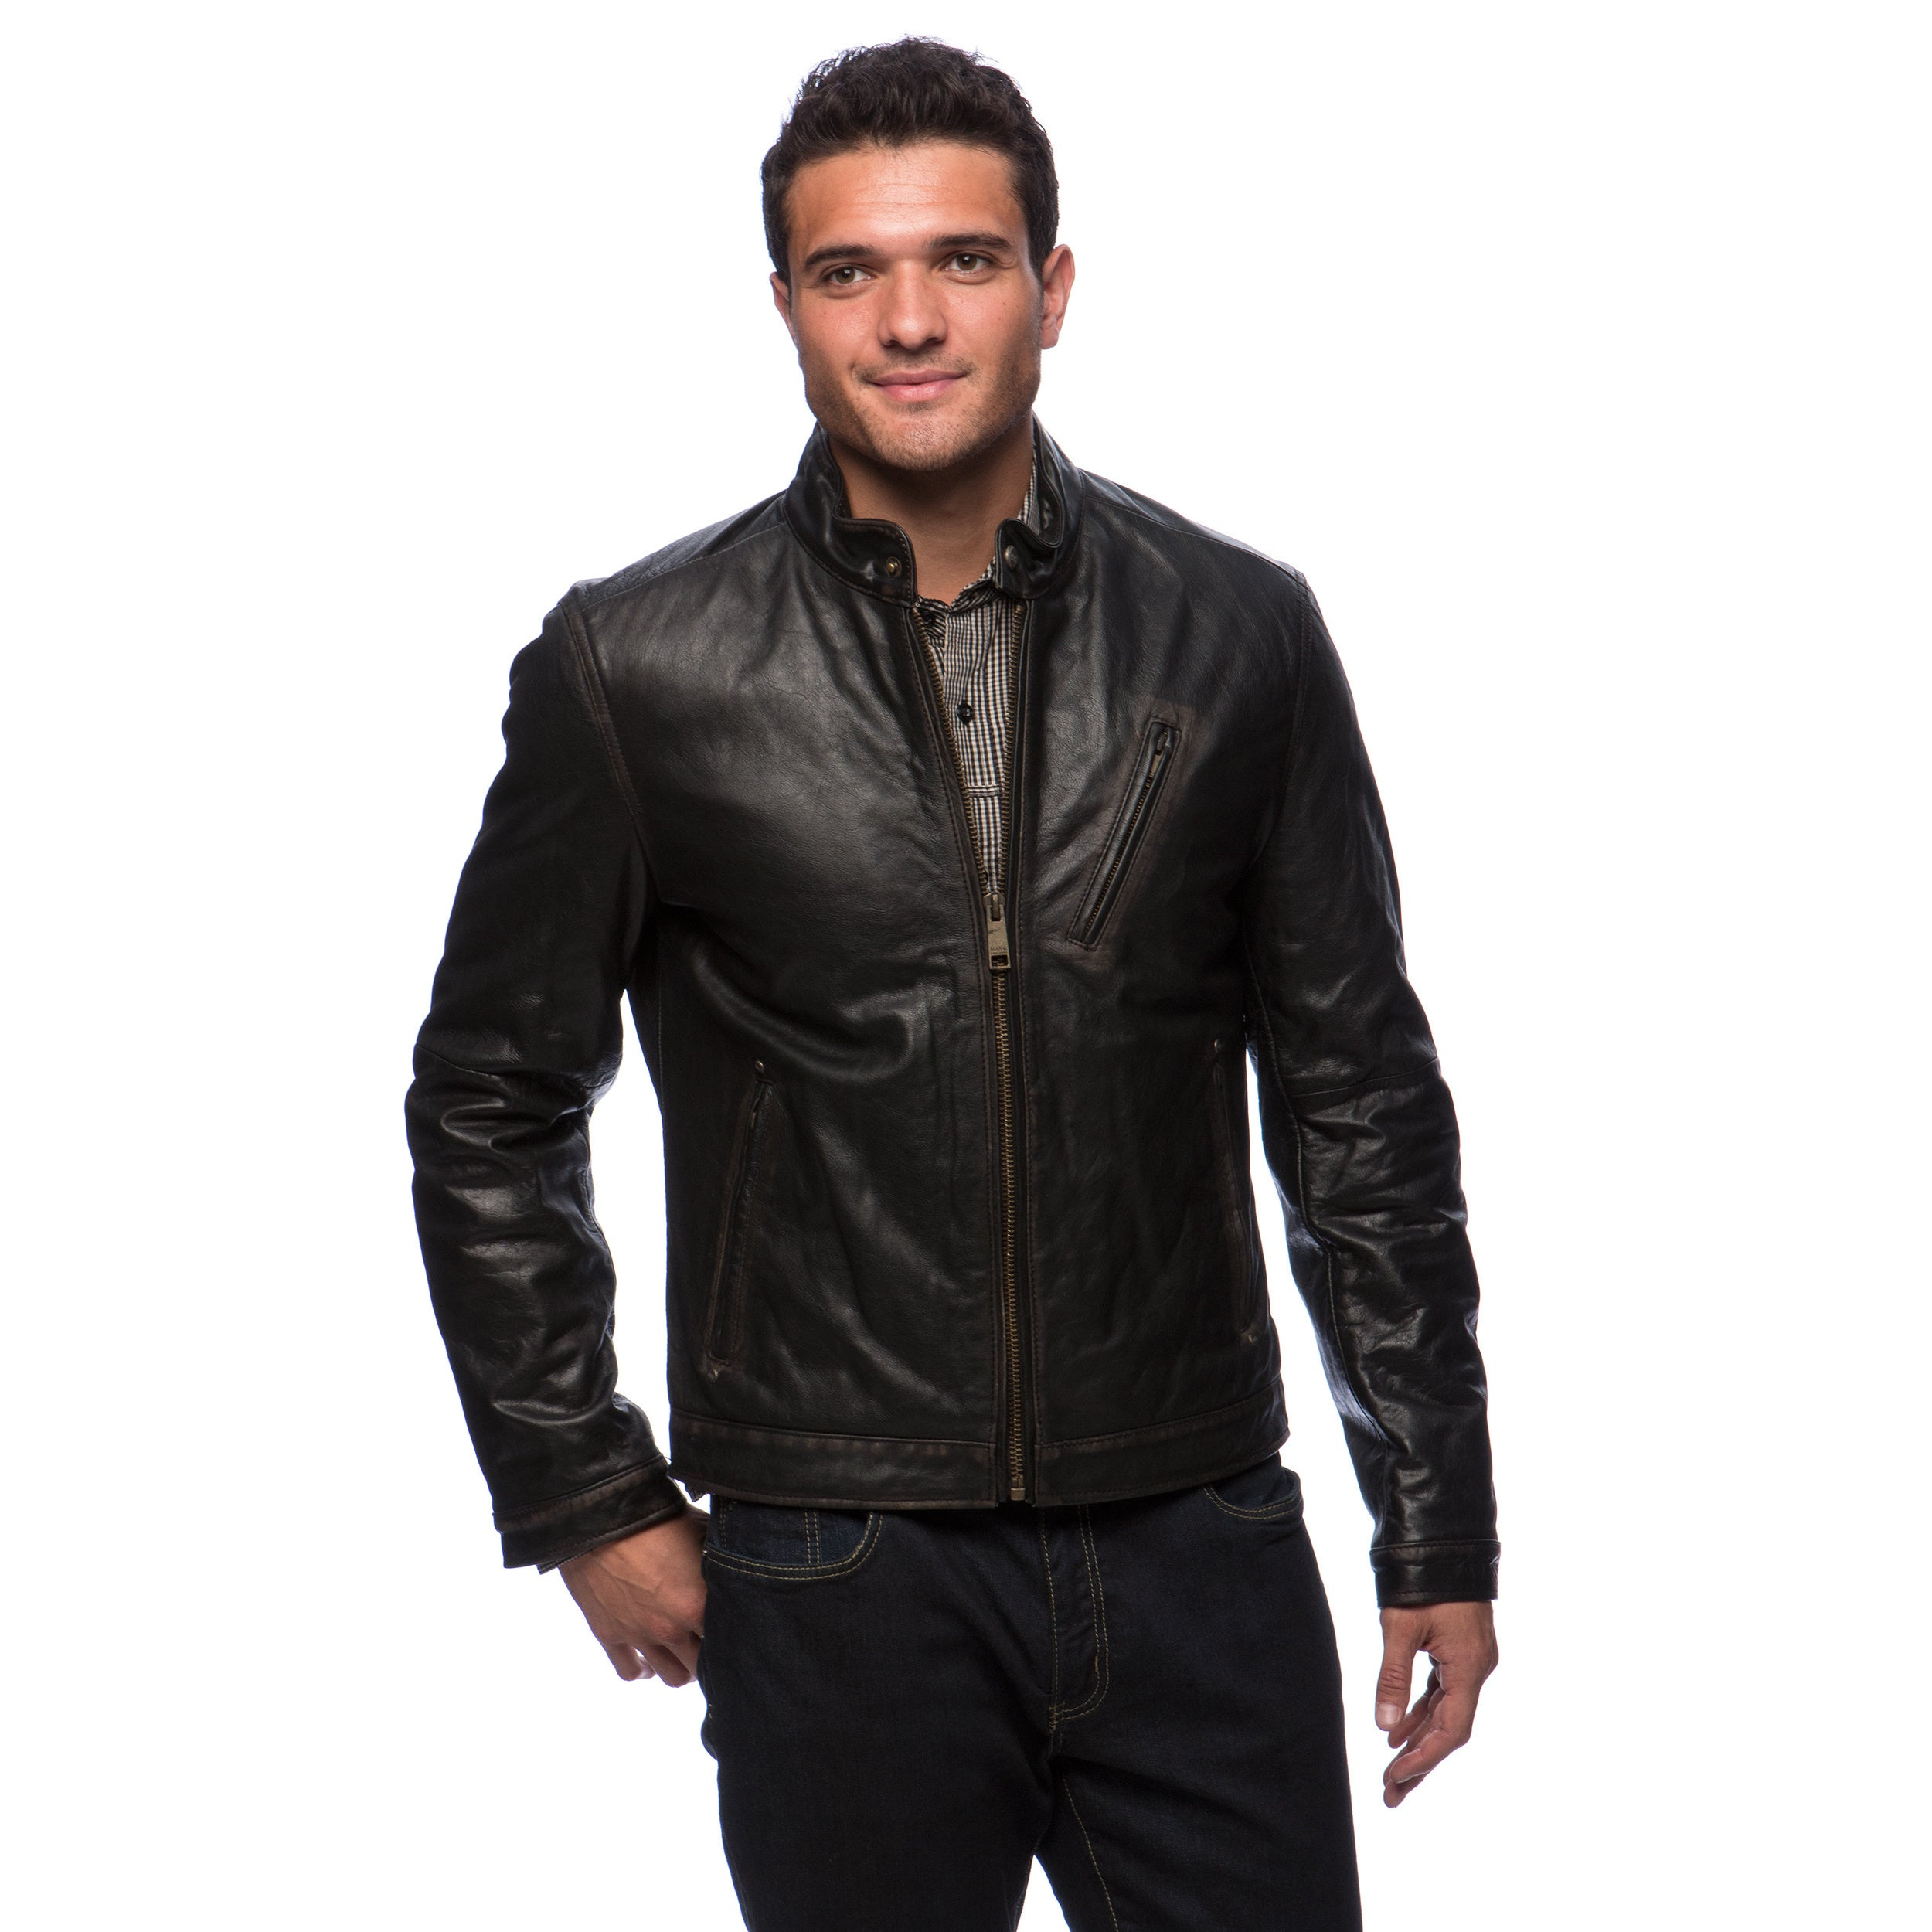 b06564e1ef84 Shop Marc New York Men's Radford Distressed Leather Moto Jacket with  Diagonal Chest Zipper - Free Shipping Today - Overstock - 10075226